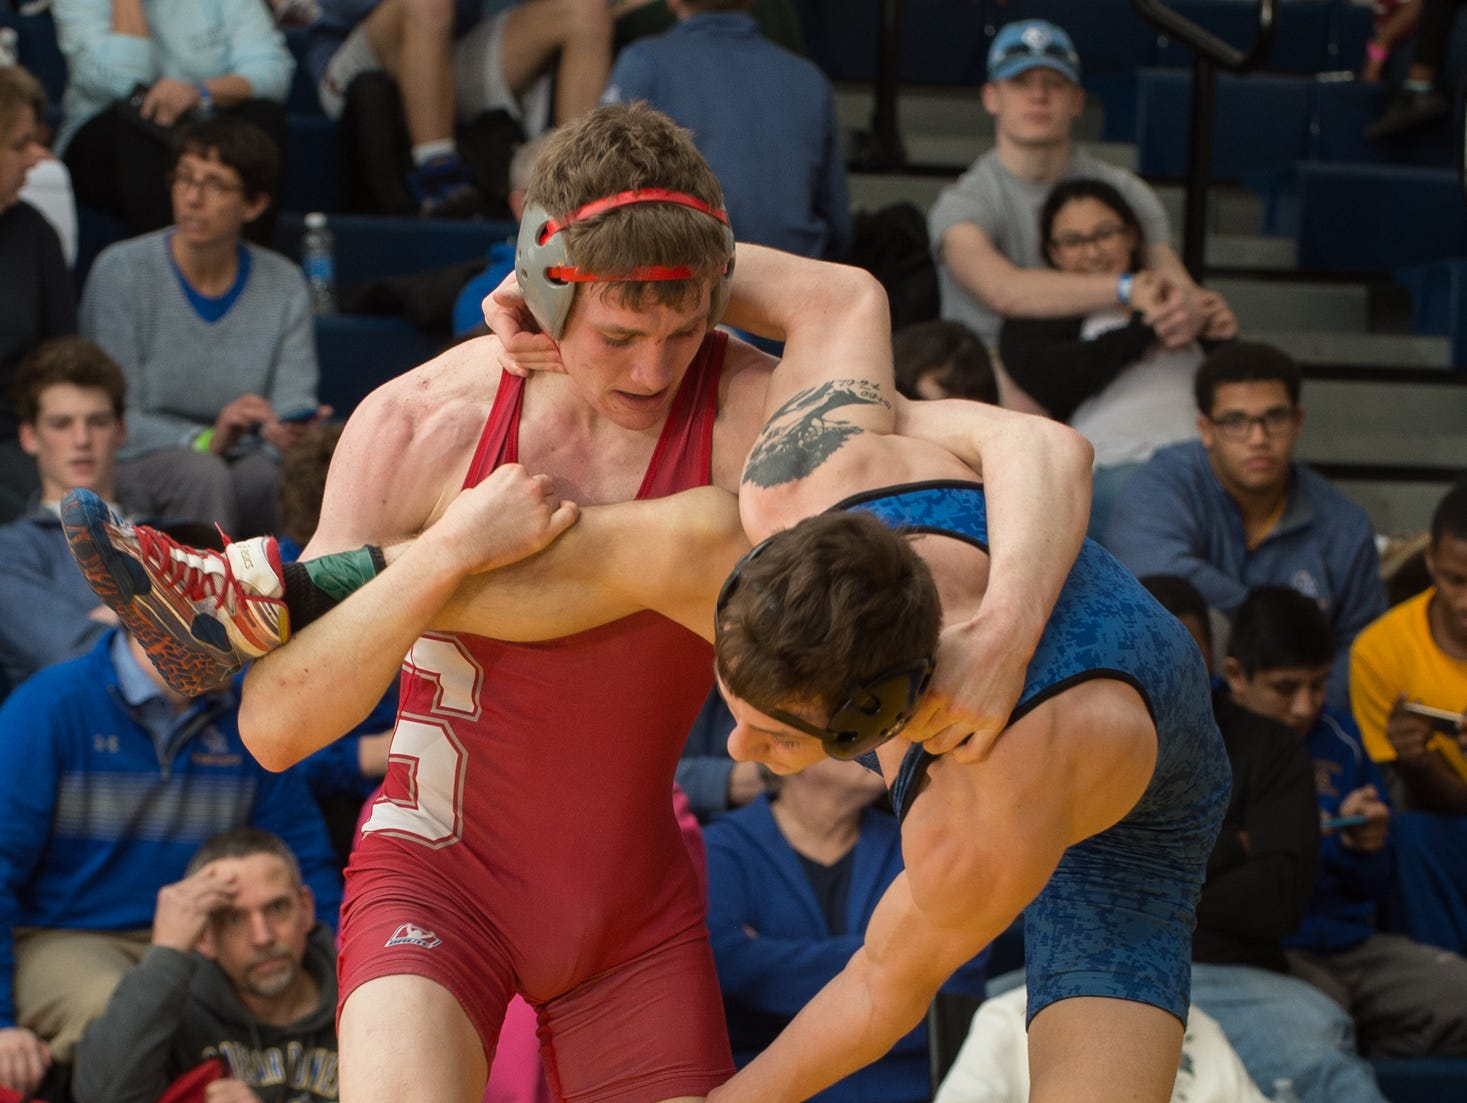 Smyrna's Chase Archangelo holds the leg of Dover's Nicholas Lee in the 145 pound championship match at the Henlopen Conference wrestling tournament at Sussex Central High School.